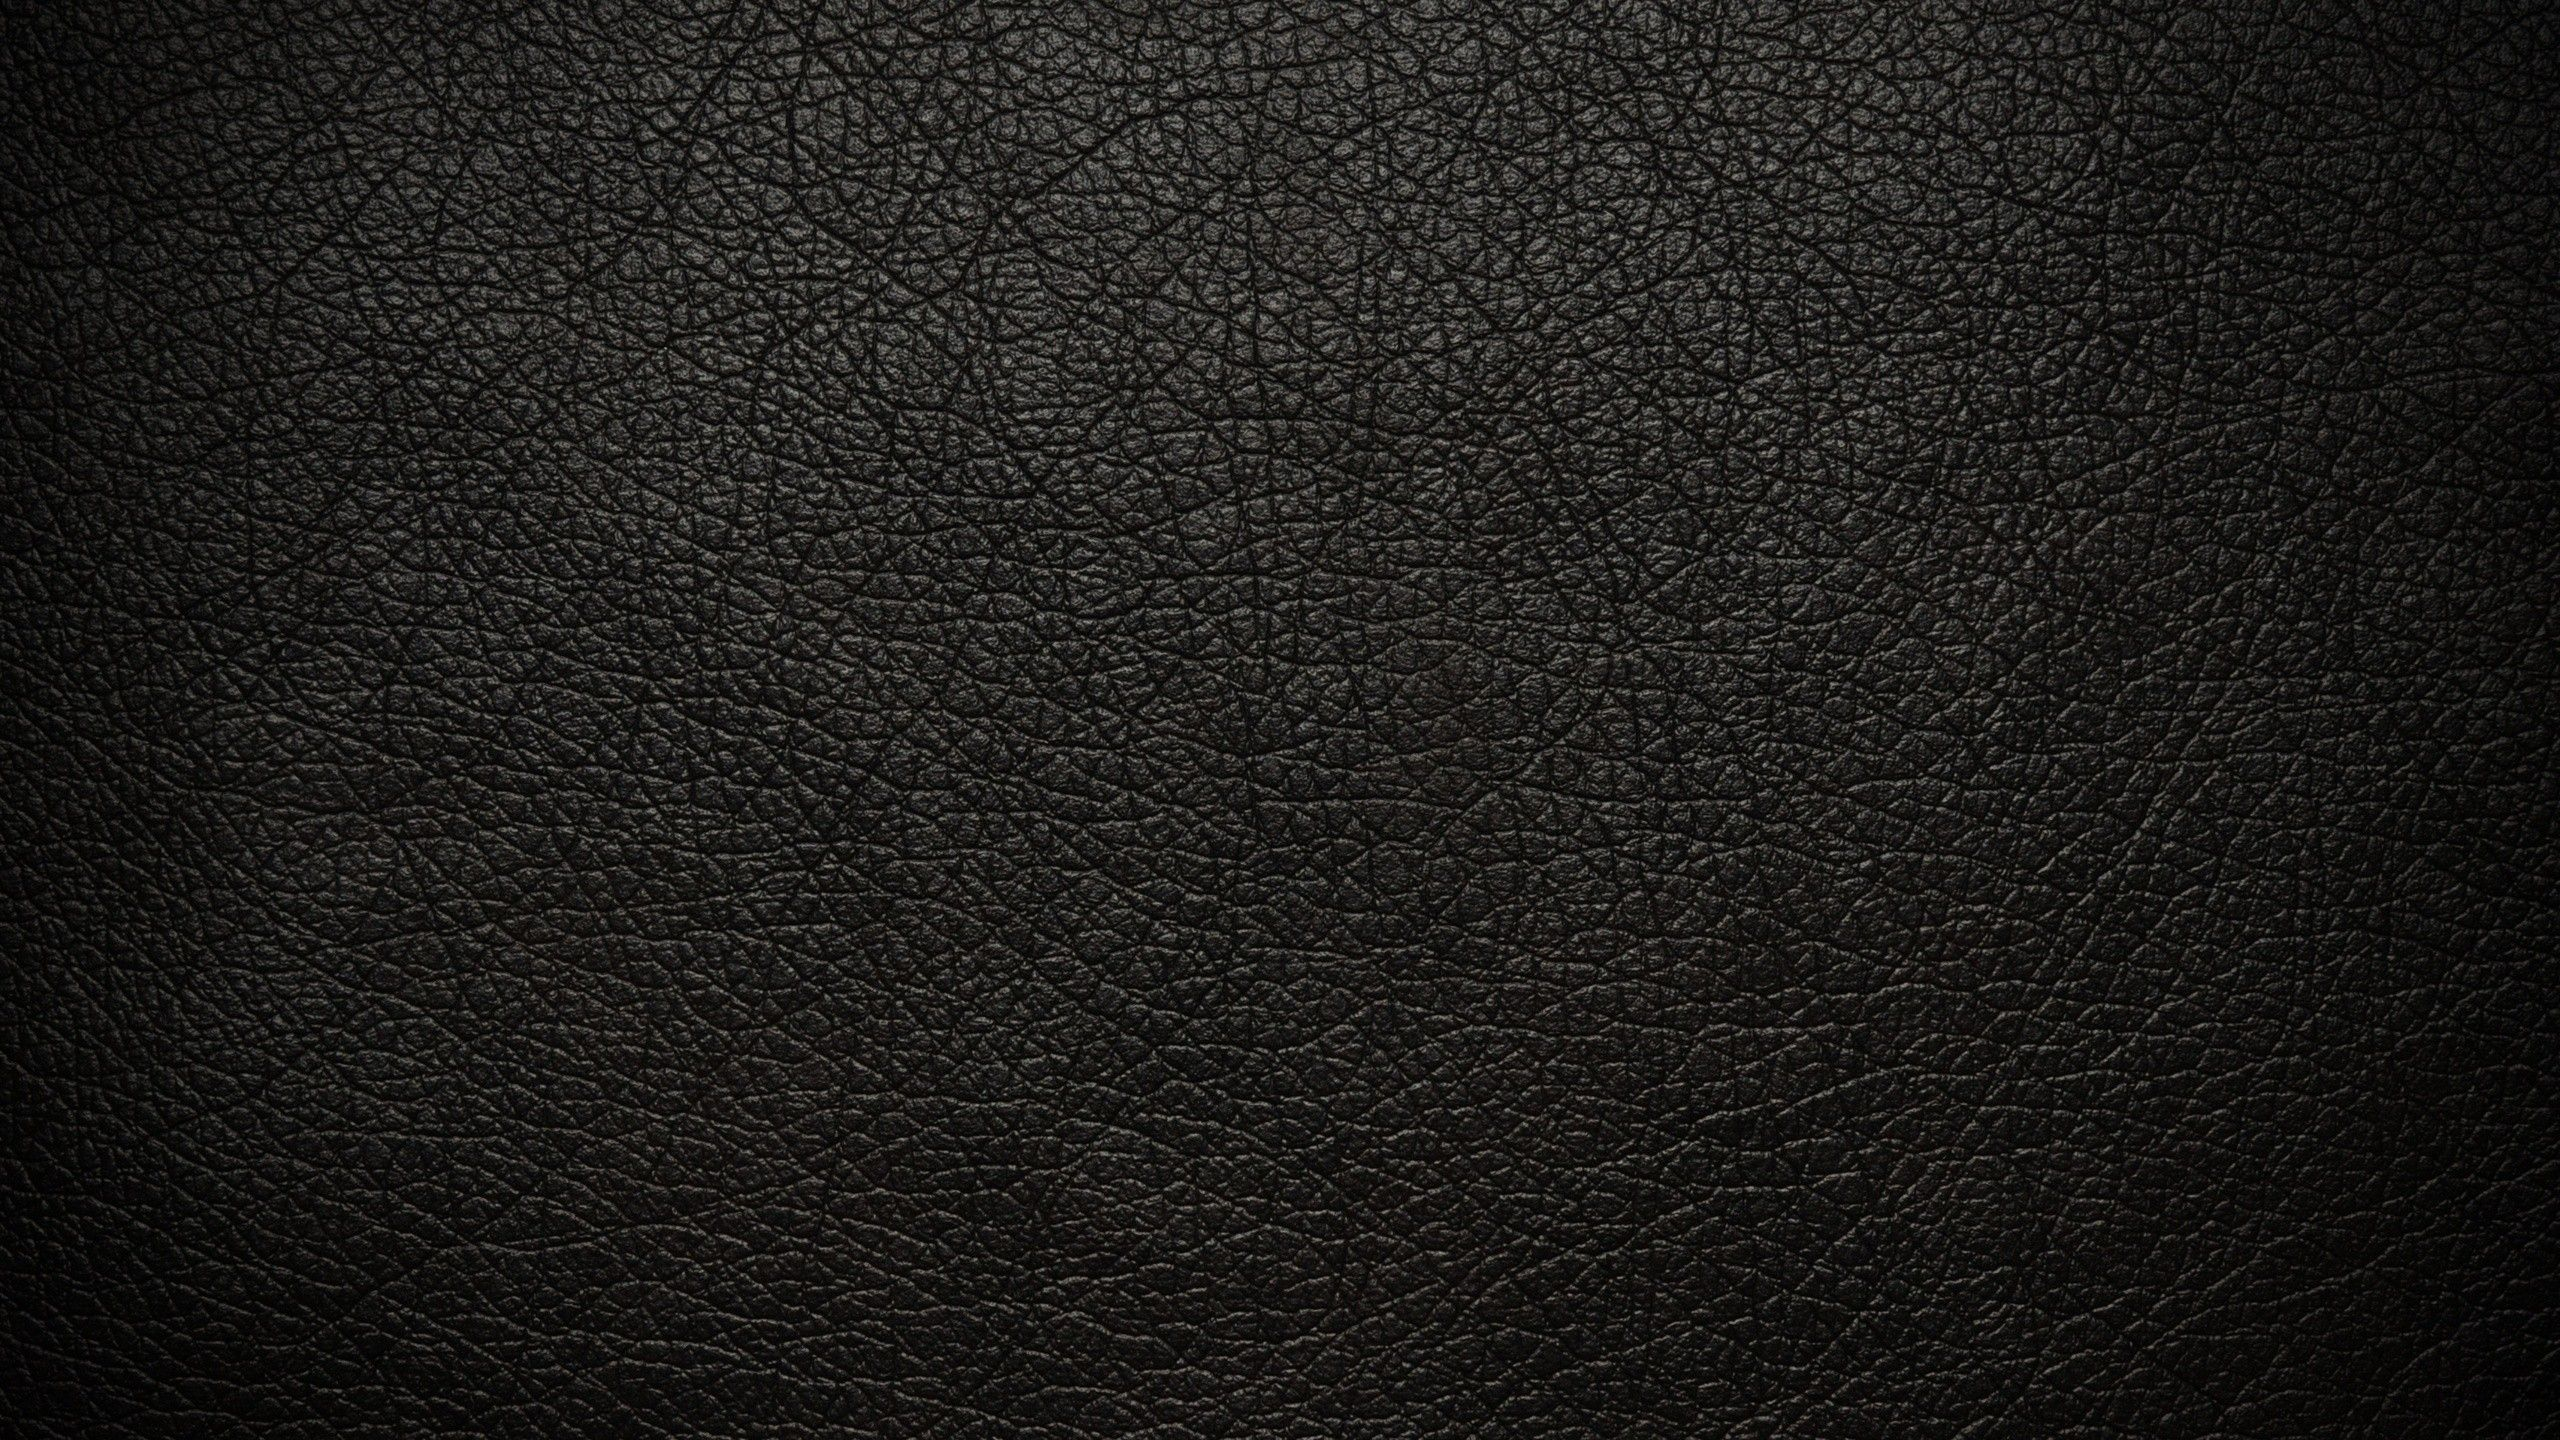 General 2560x1440 texture leather Planos de fundo